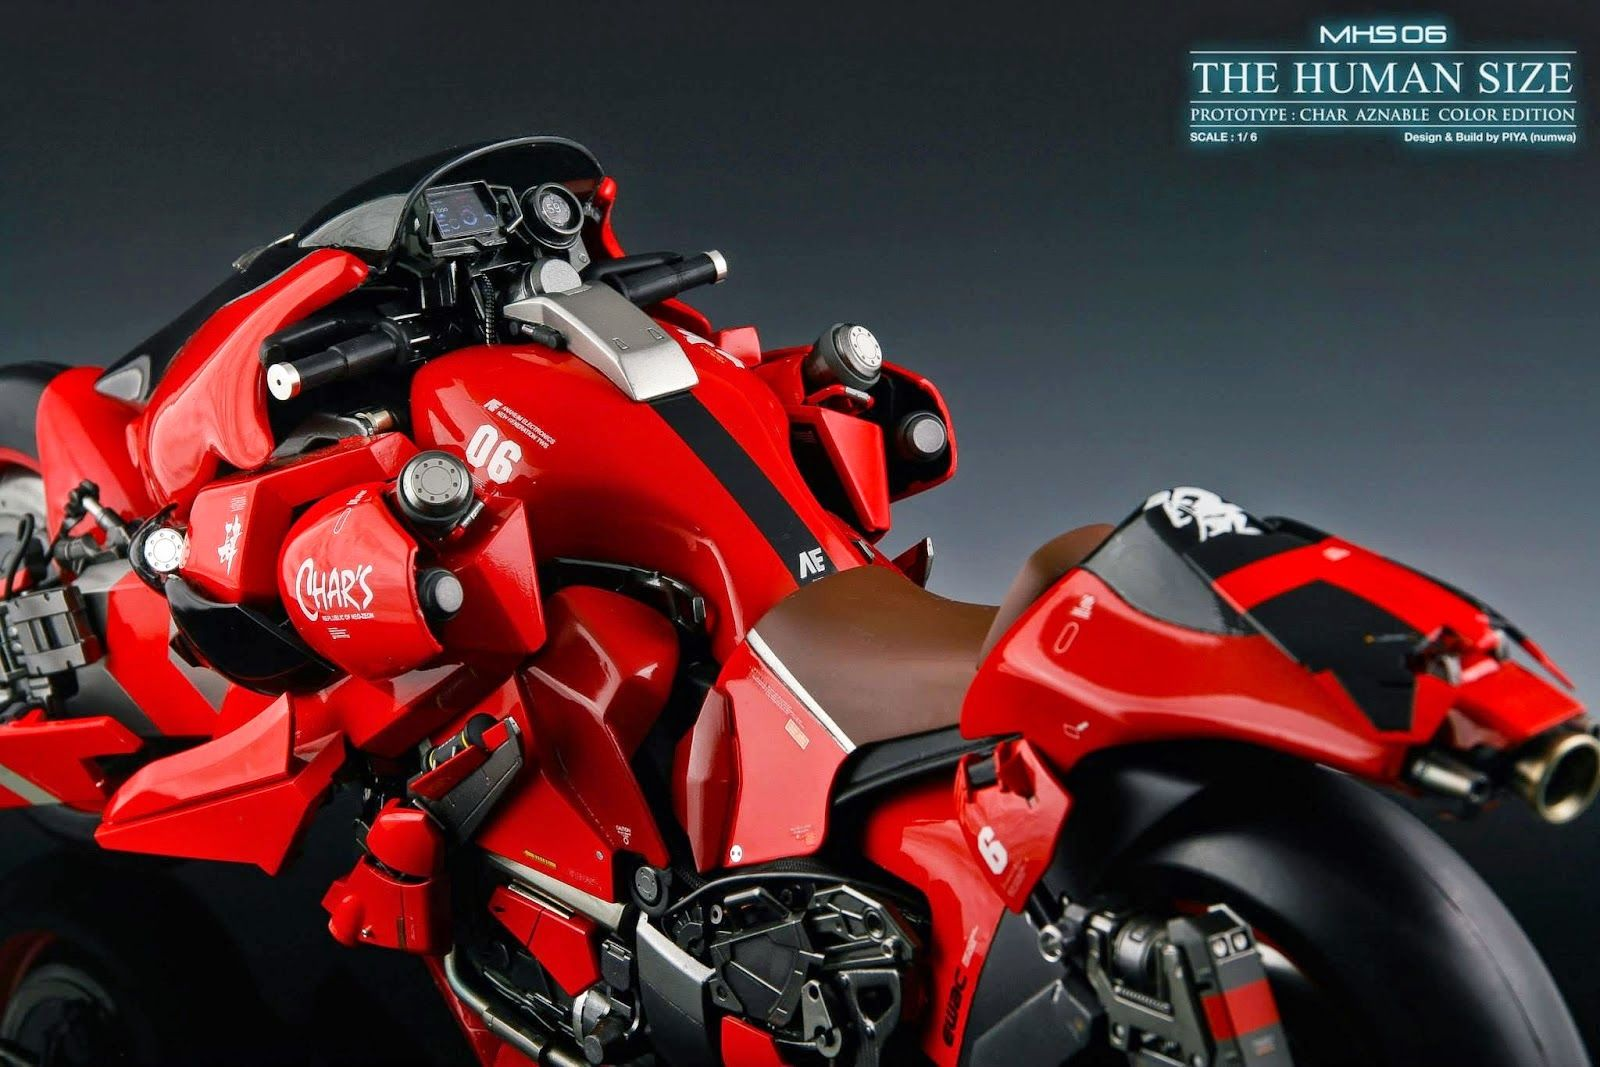 Gundam Guy 1 6 Scale Msh 06 The Humansize Custom Build Futuristic Motorcycle Concept Motorcycles Bike Design